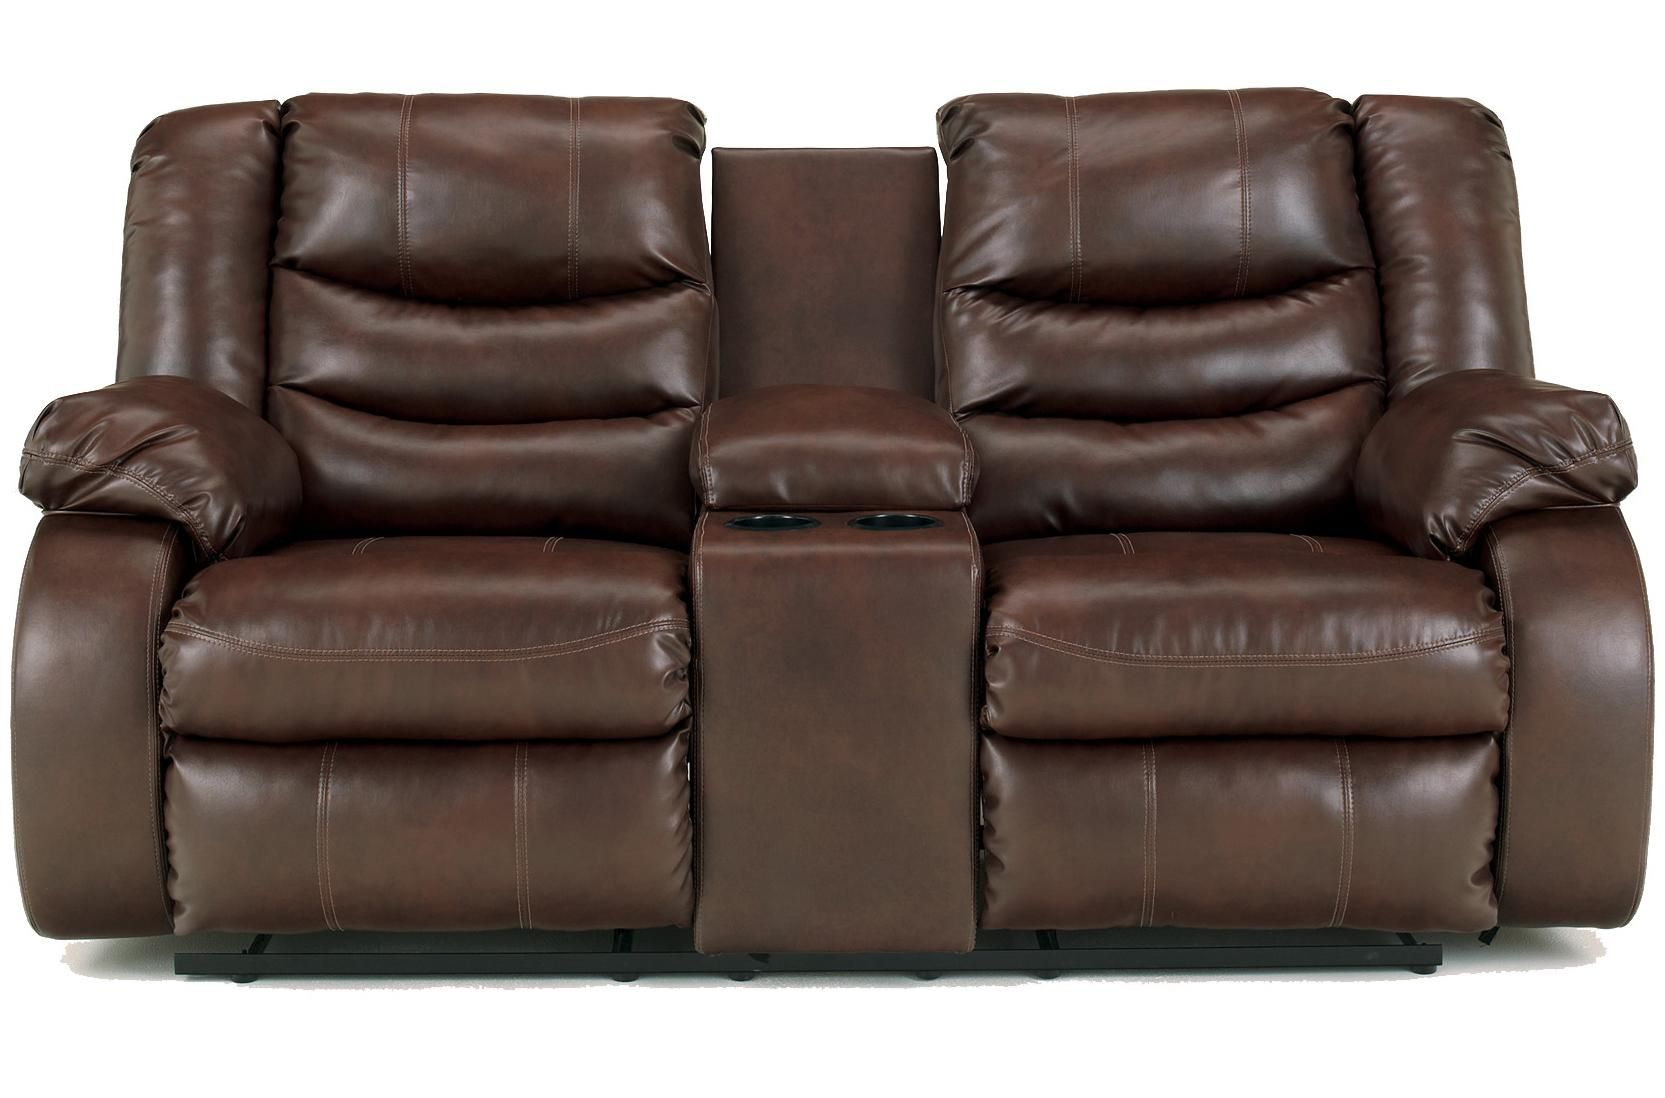 linebacker durablend espresso contemporary double reclining